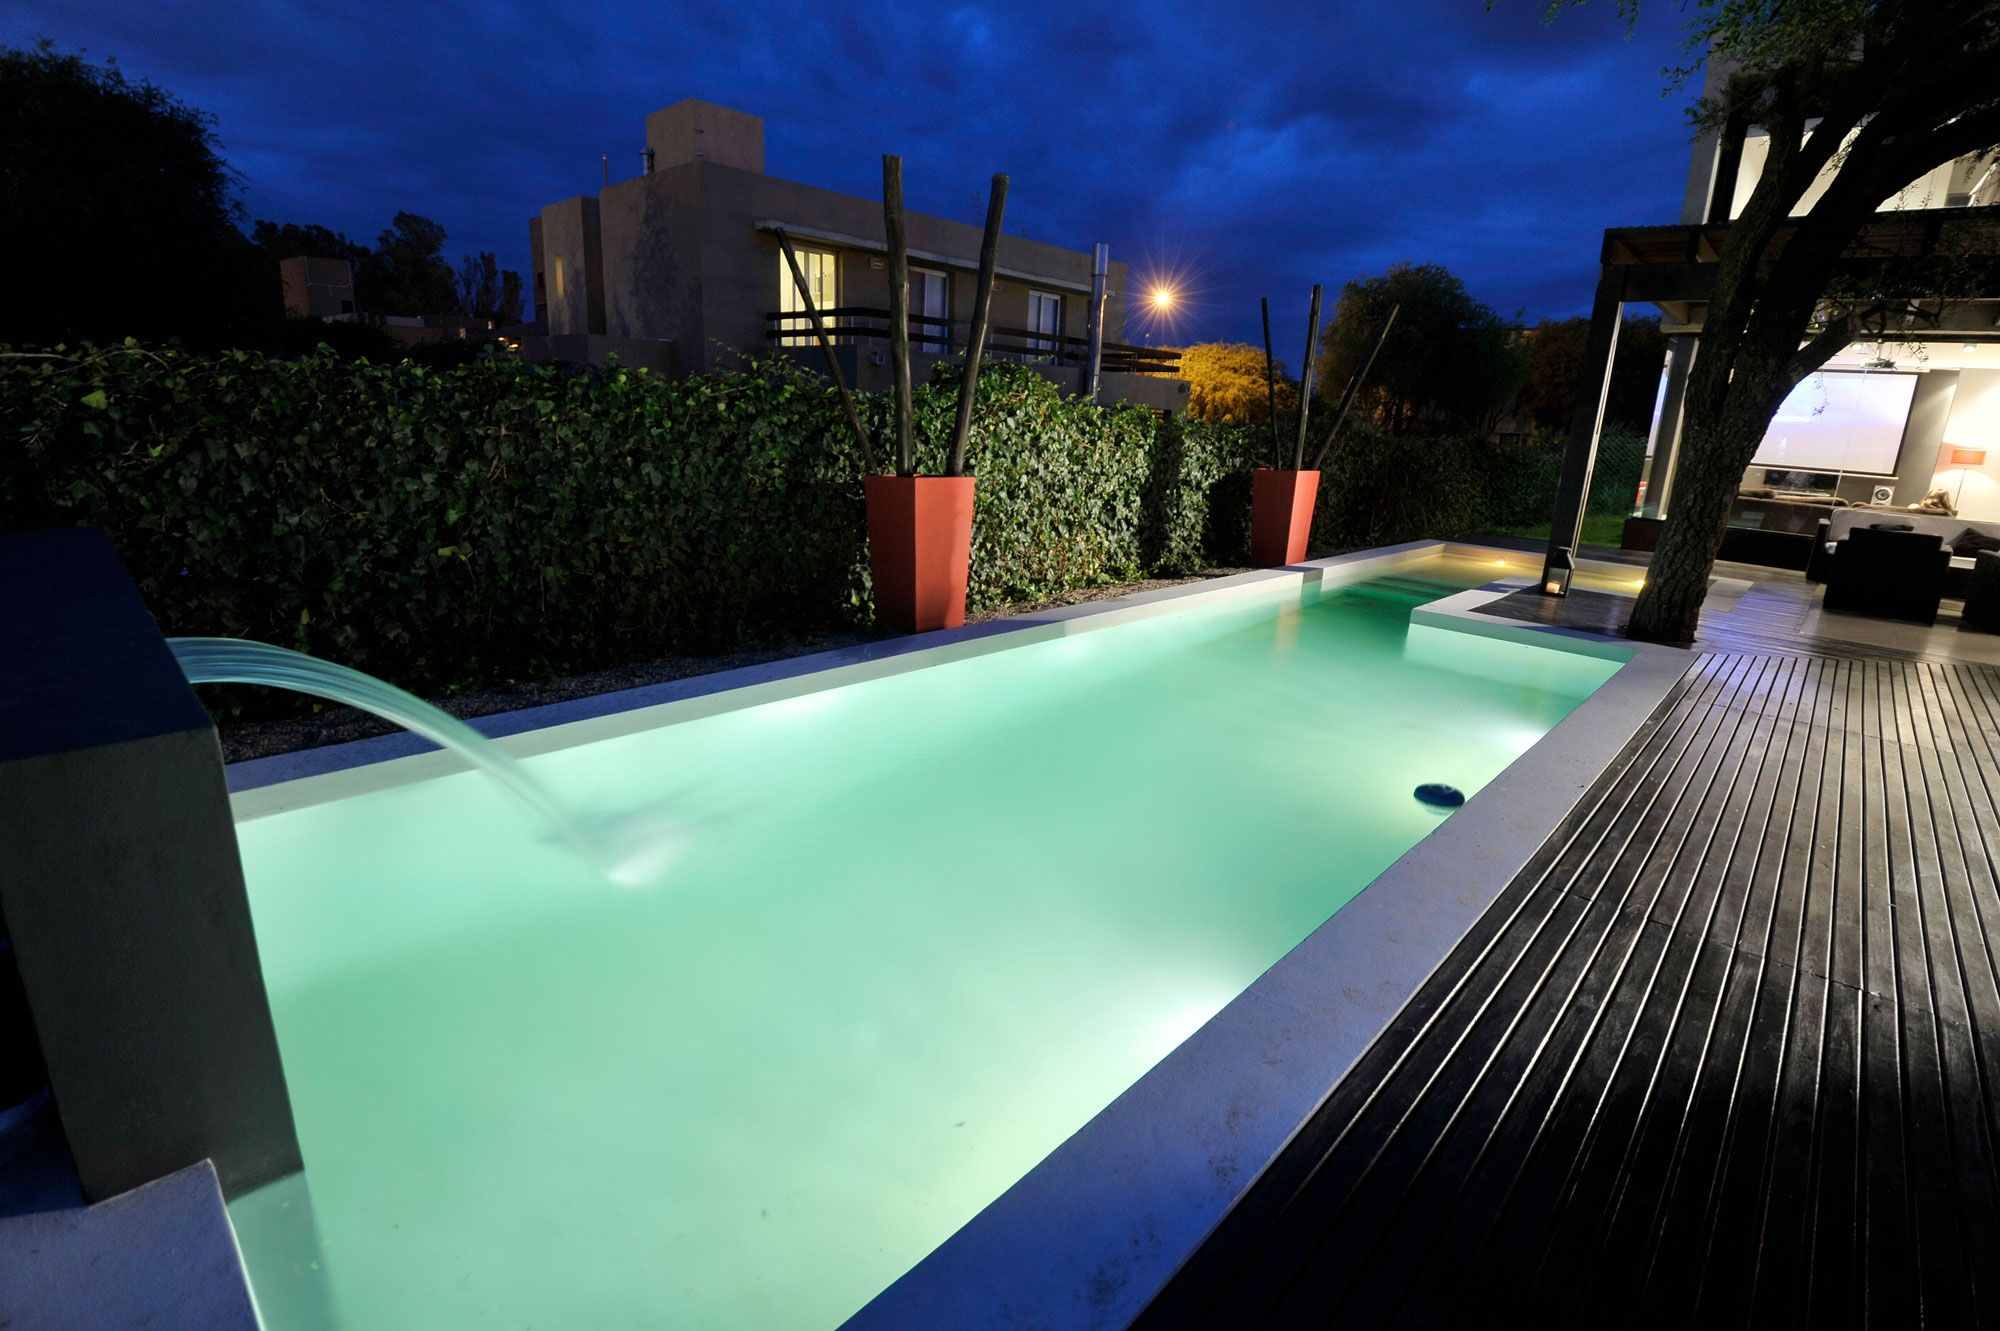 Home Swimming Pools Decorating Ideas Exterior Design Elegant Ideas on interior design, architecture design, modern tropical house design, modern house roof designs, very modern house design, modern house plans, modern interior paint color schemes in grey, best modern house design, modern house design concept, modern architectural design, modern houses in hawaii, ghana building plans and design, modern beach house, modern villa design, modern wall designs, simple small house design, modern house kits, house model design, cool modern house design, modern homes,